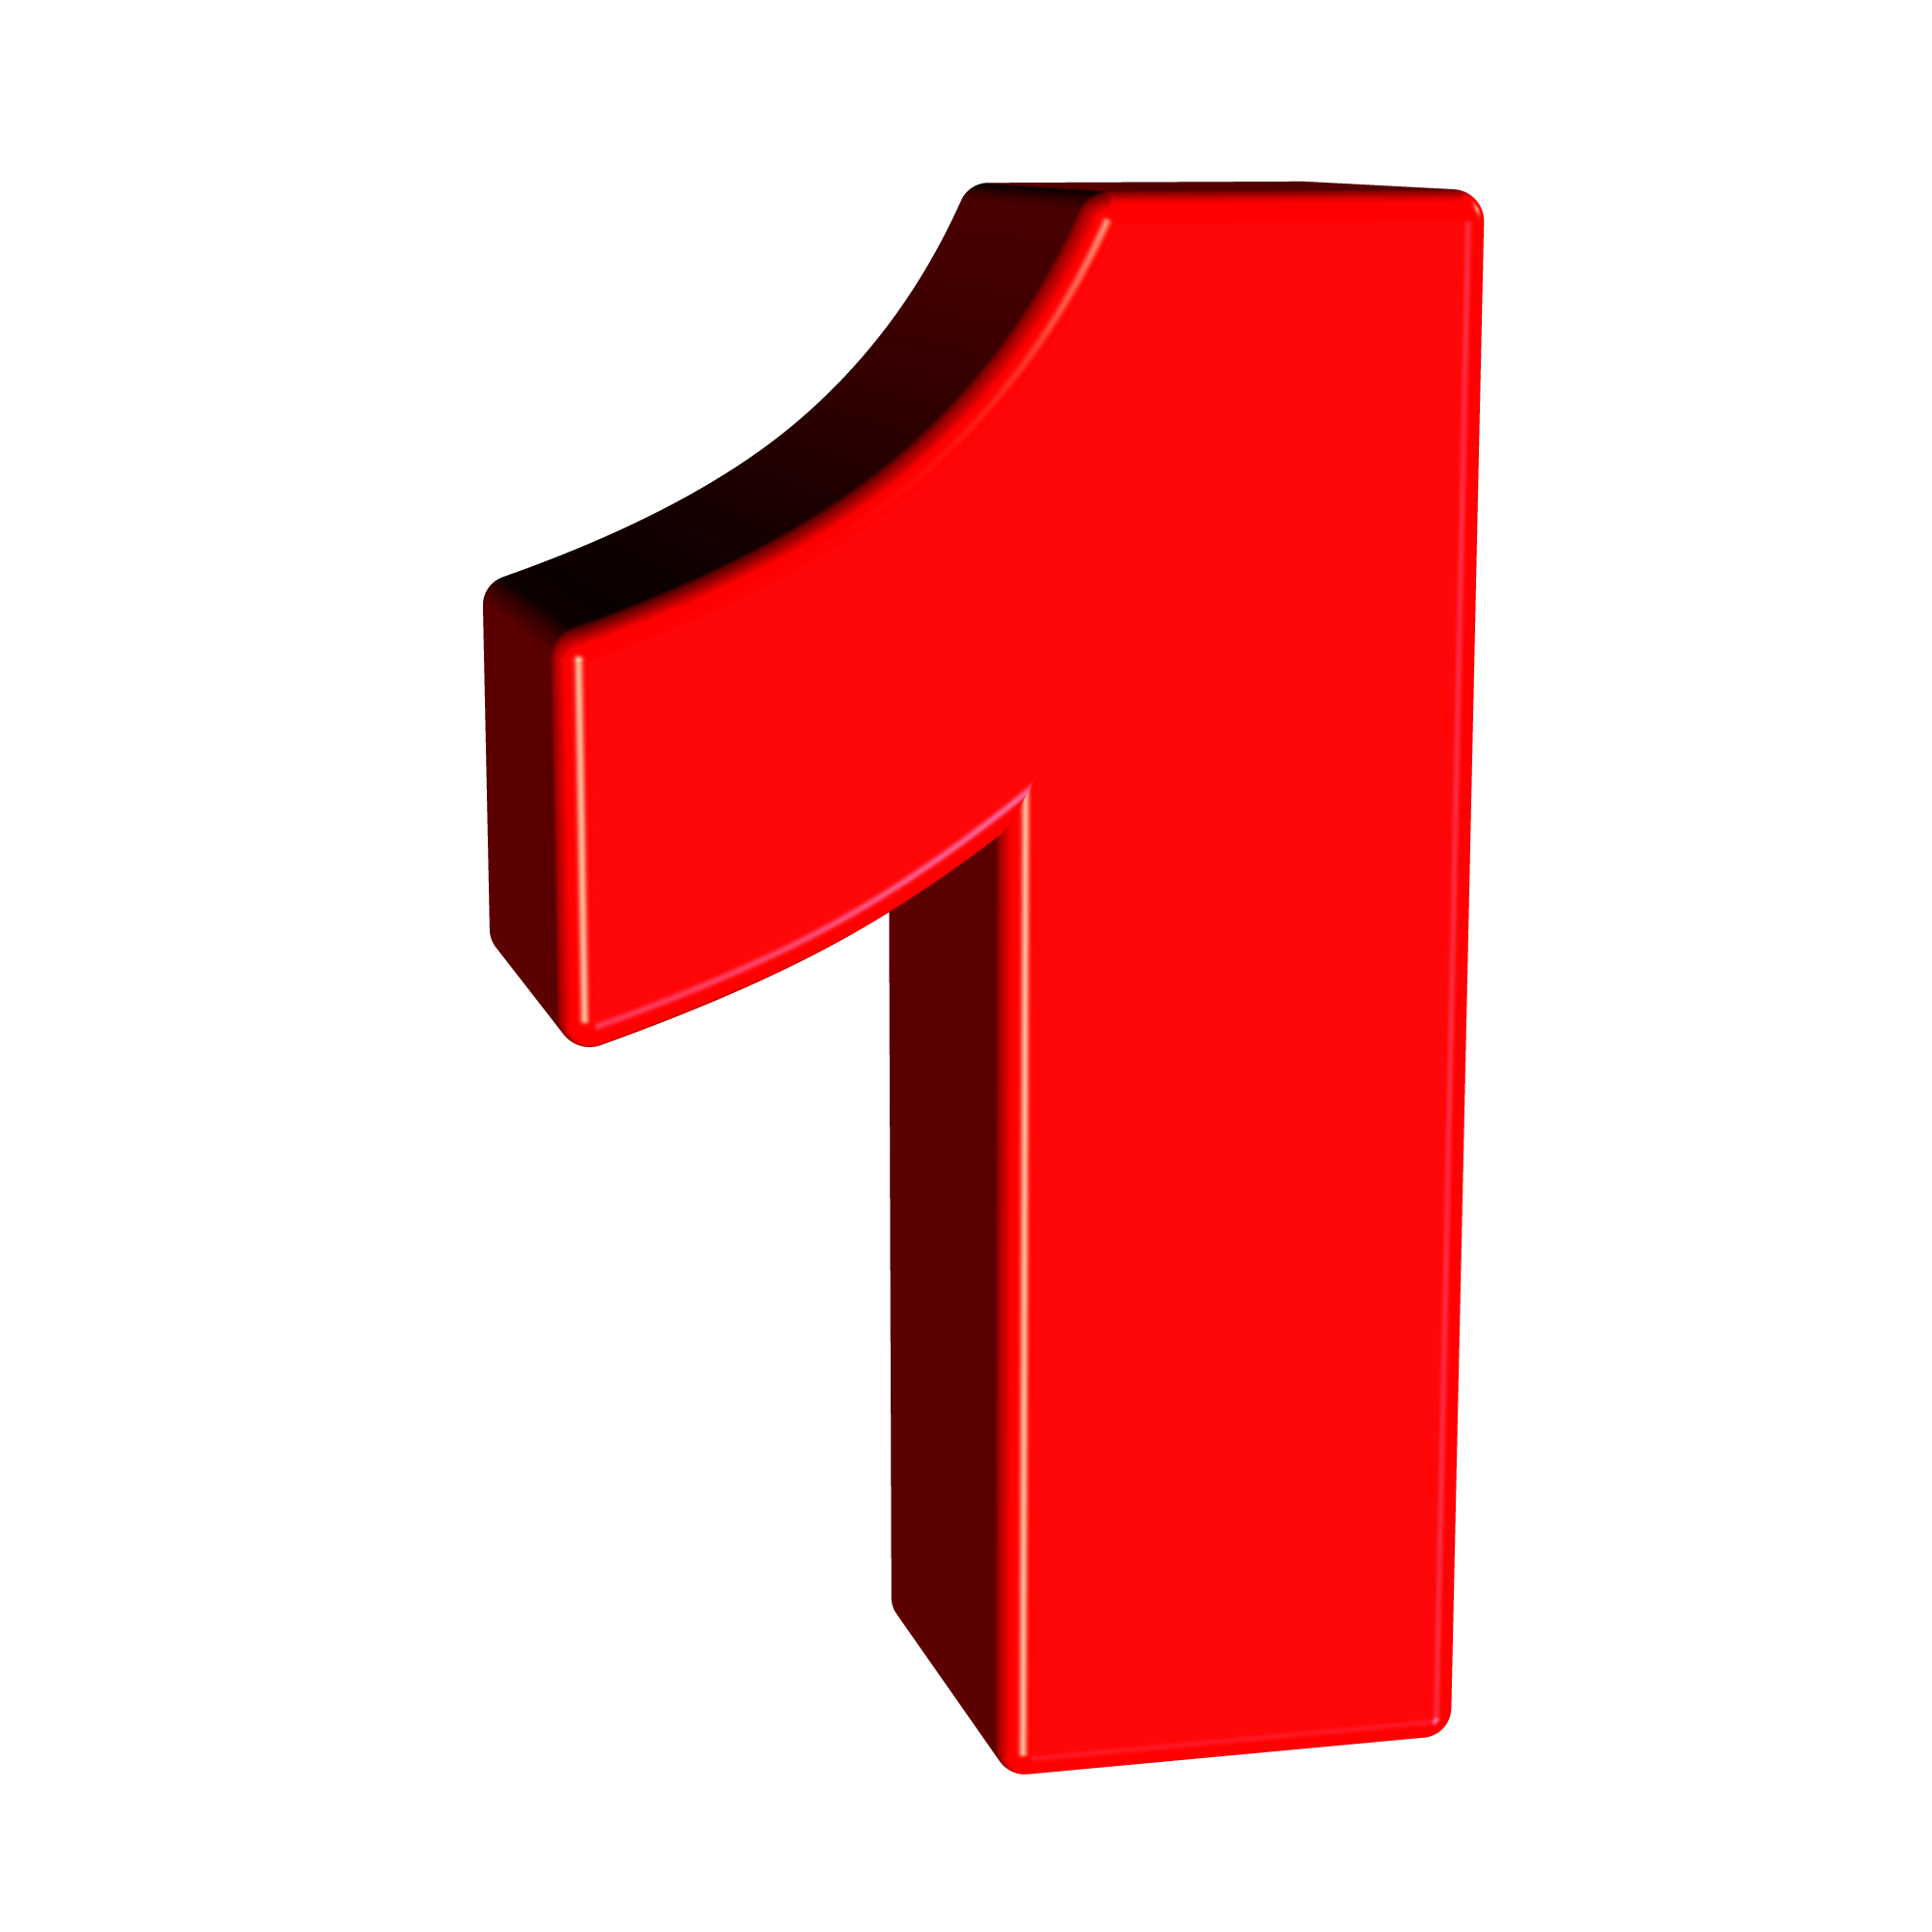 2000x2000 Free Stock Photo Of Red Number 1